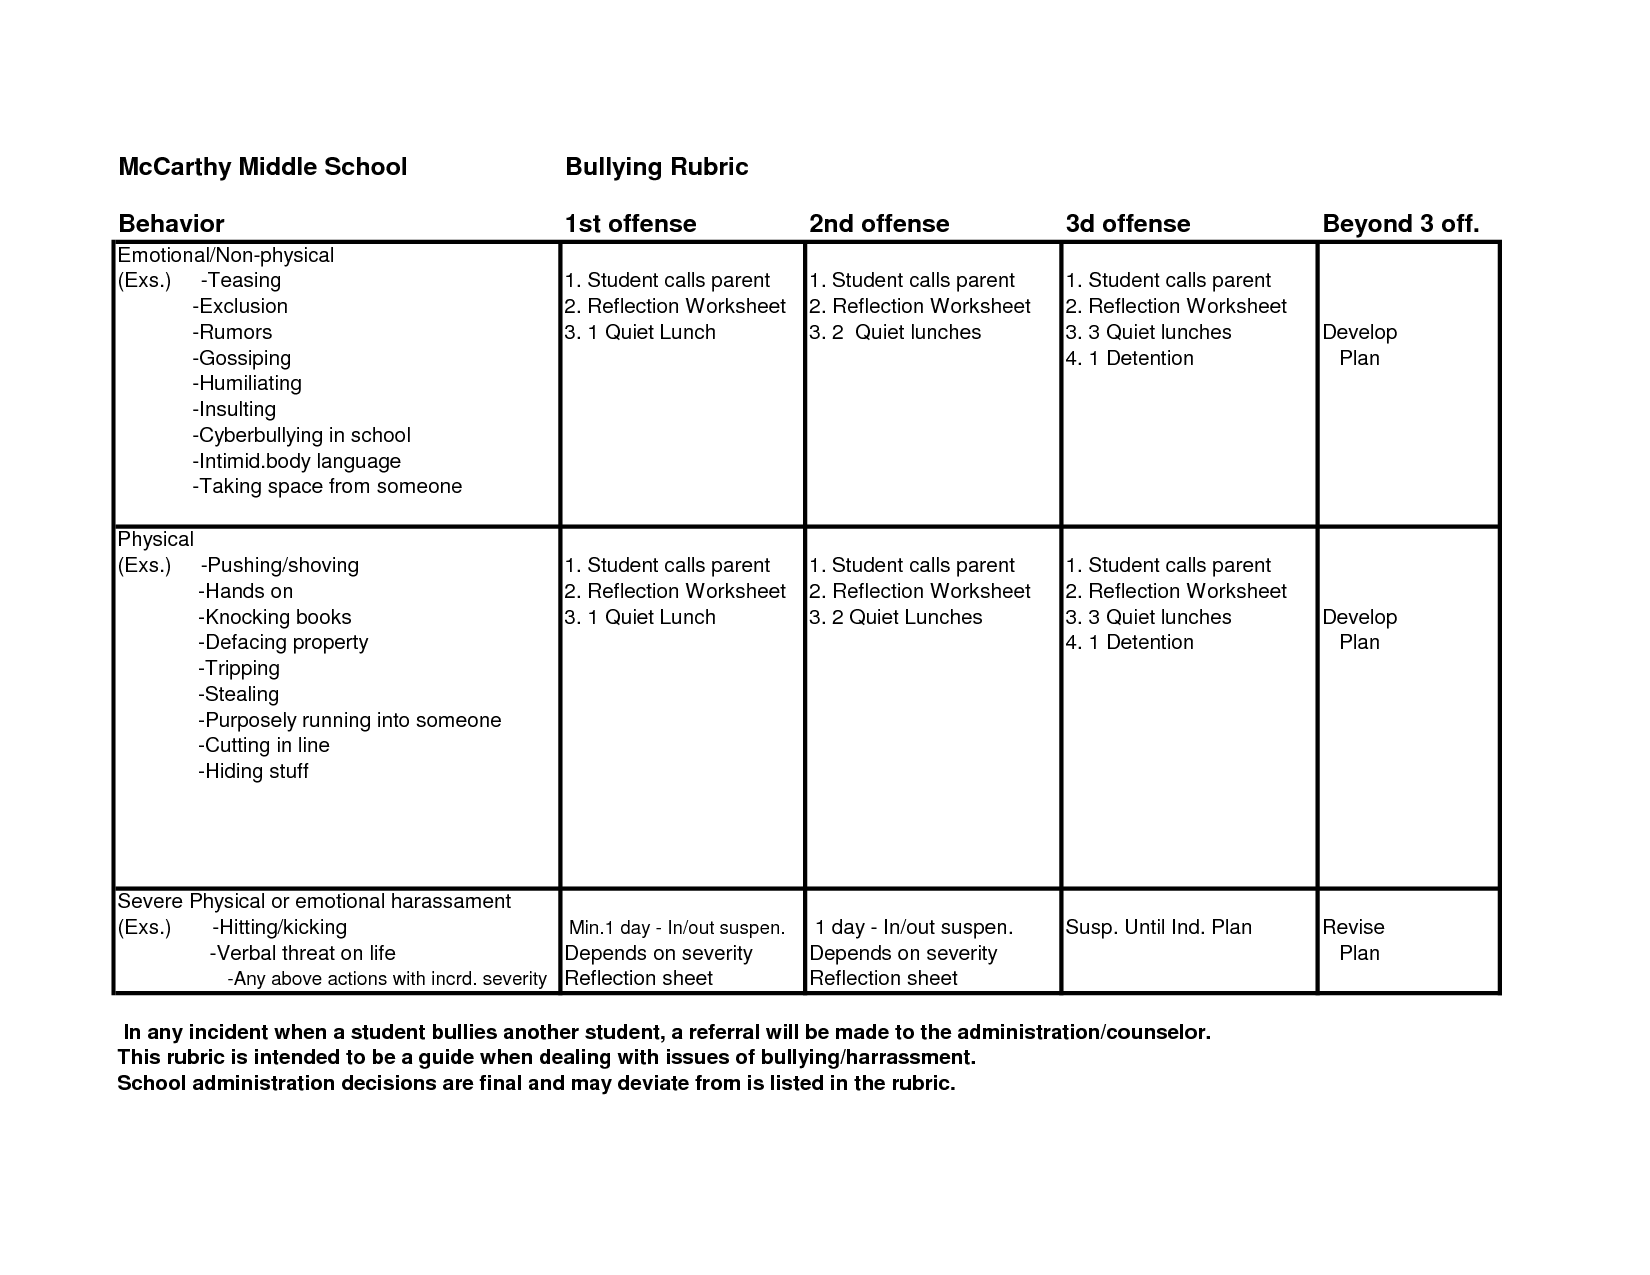 Behavior Worksheets